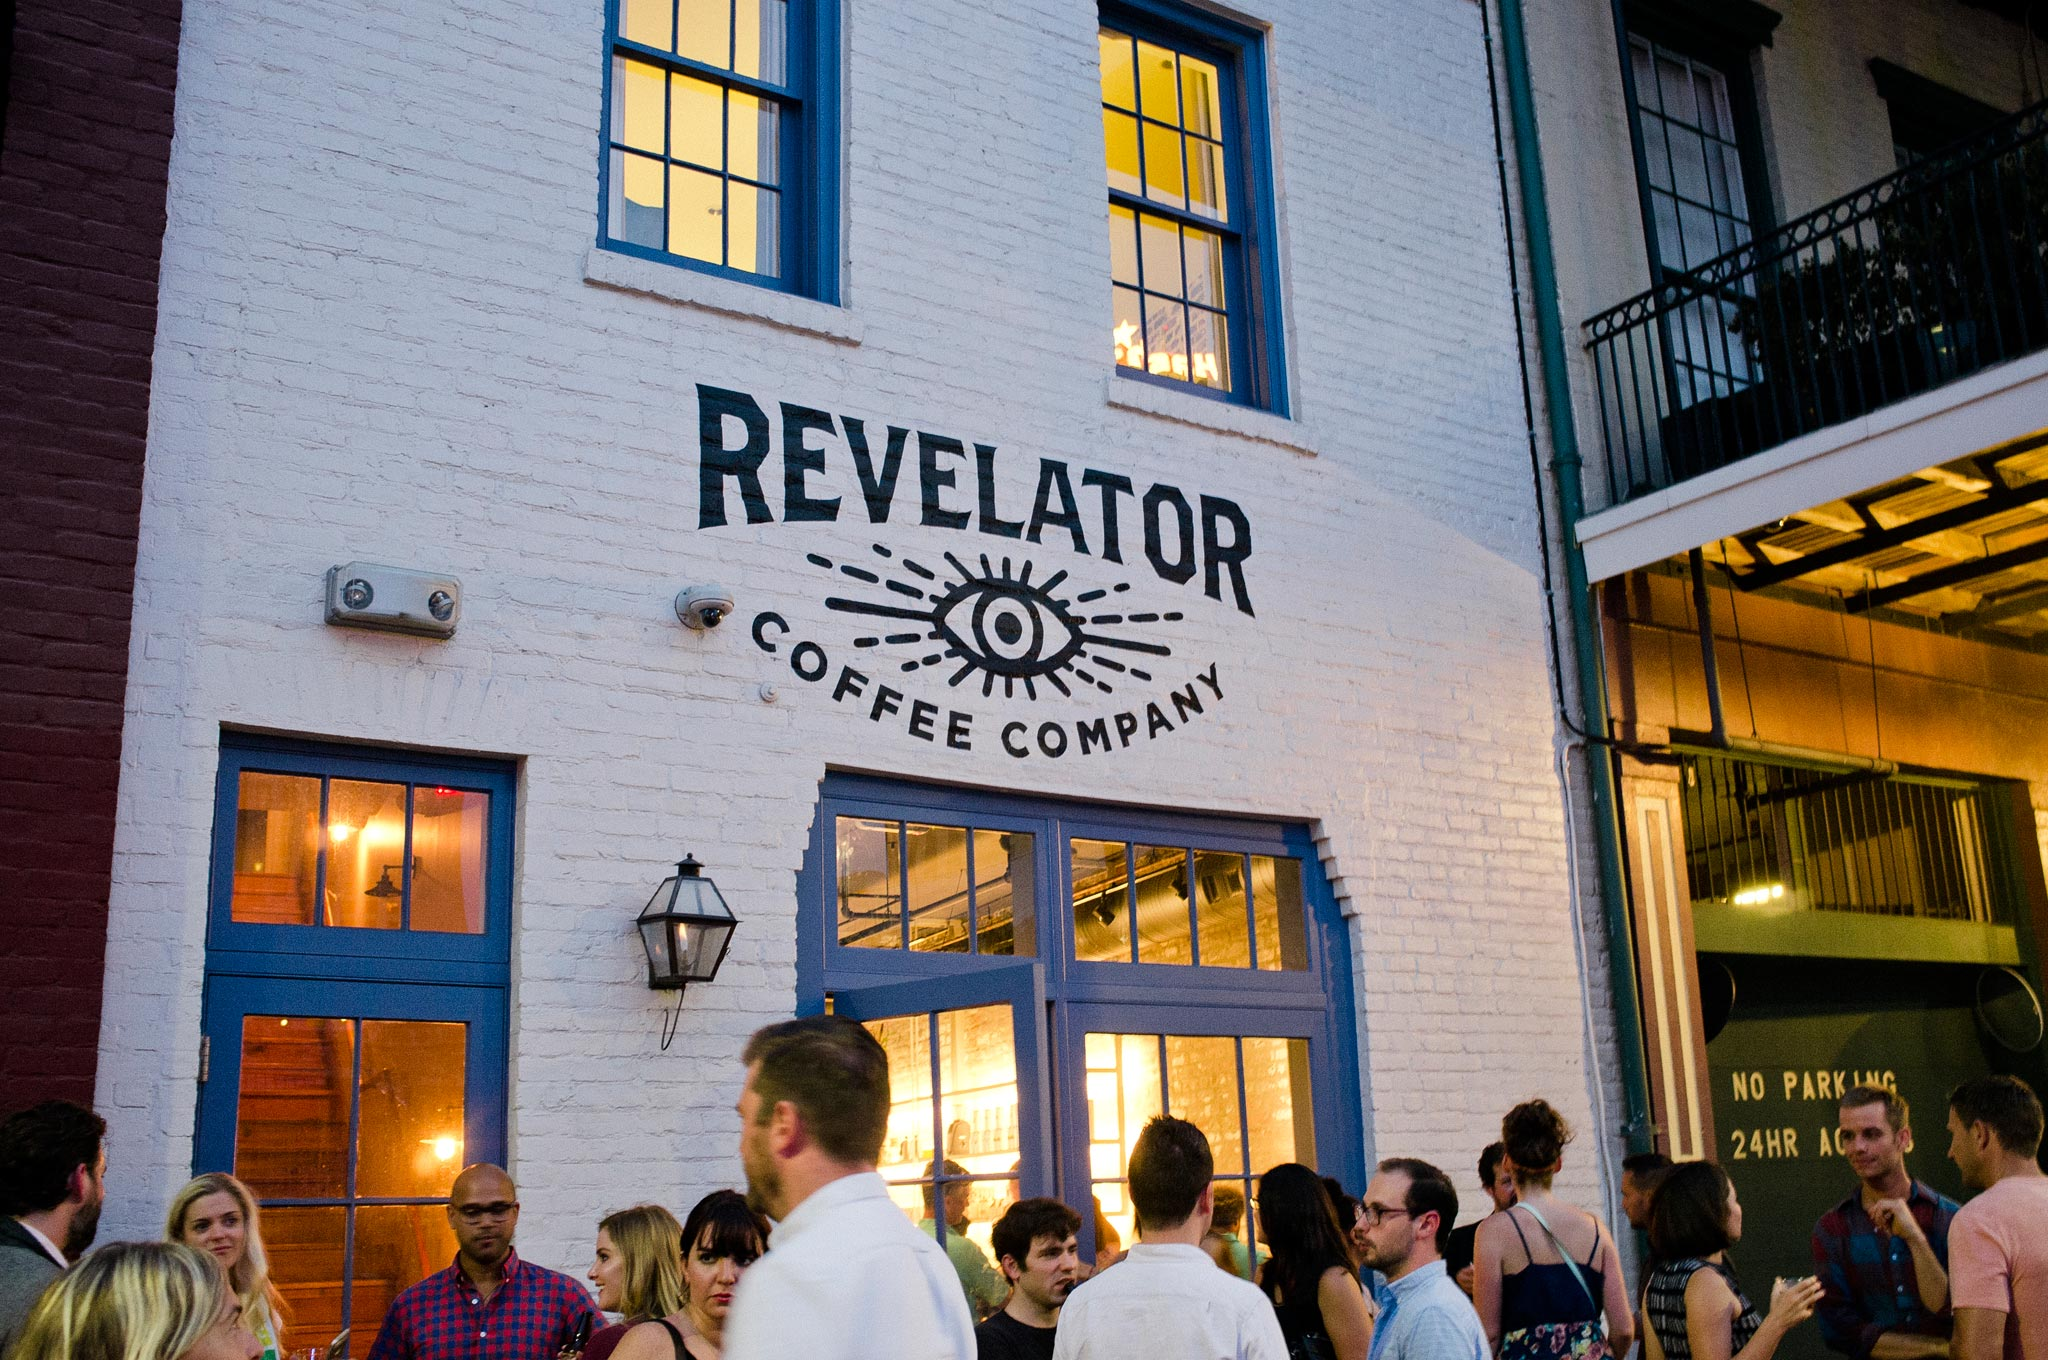 Revelator New Orleans stylish coffee bar street view of building front